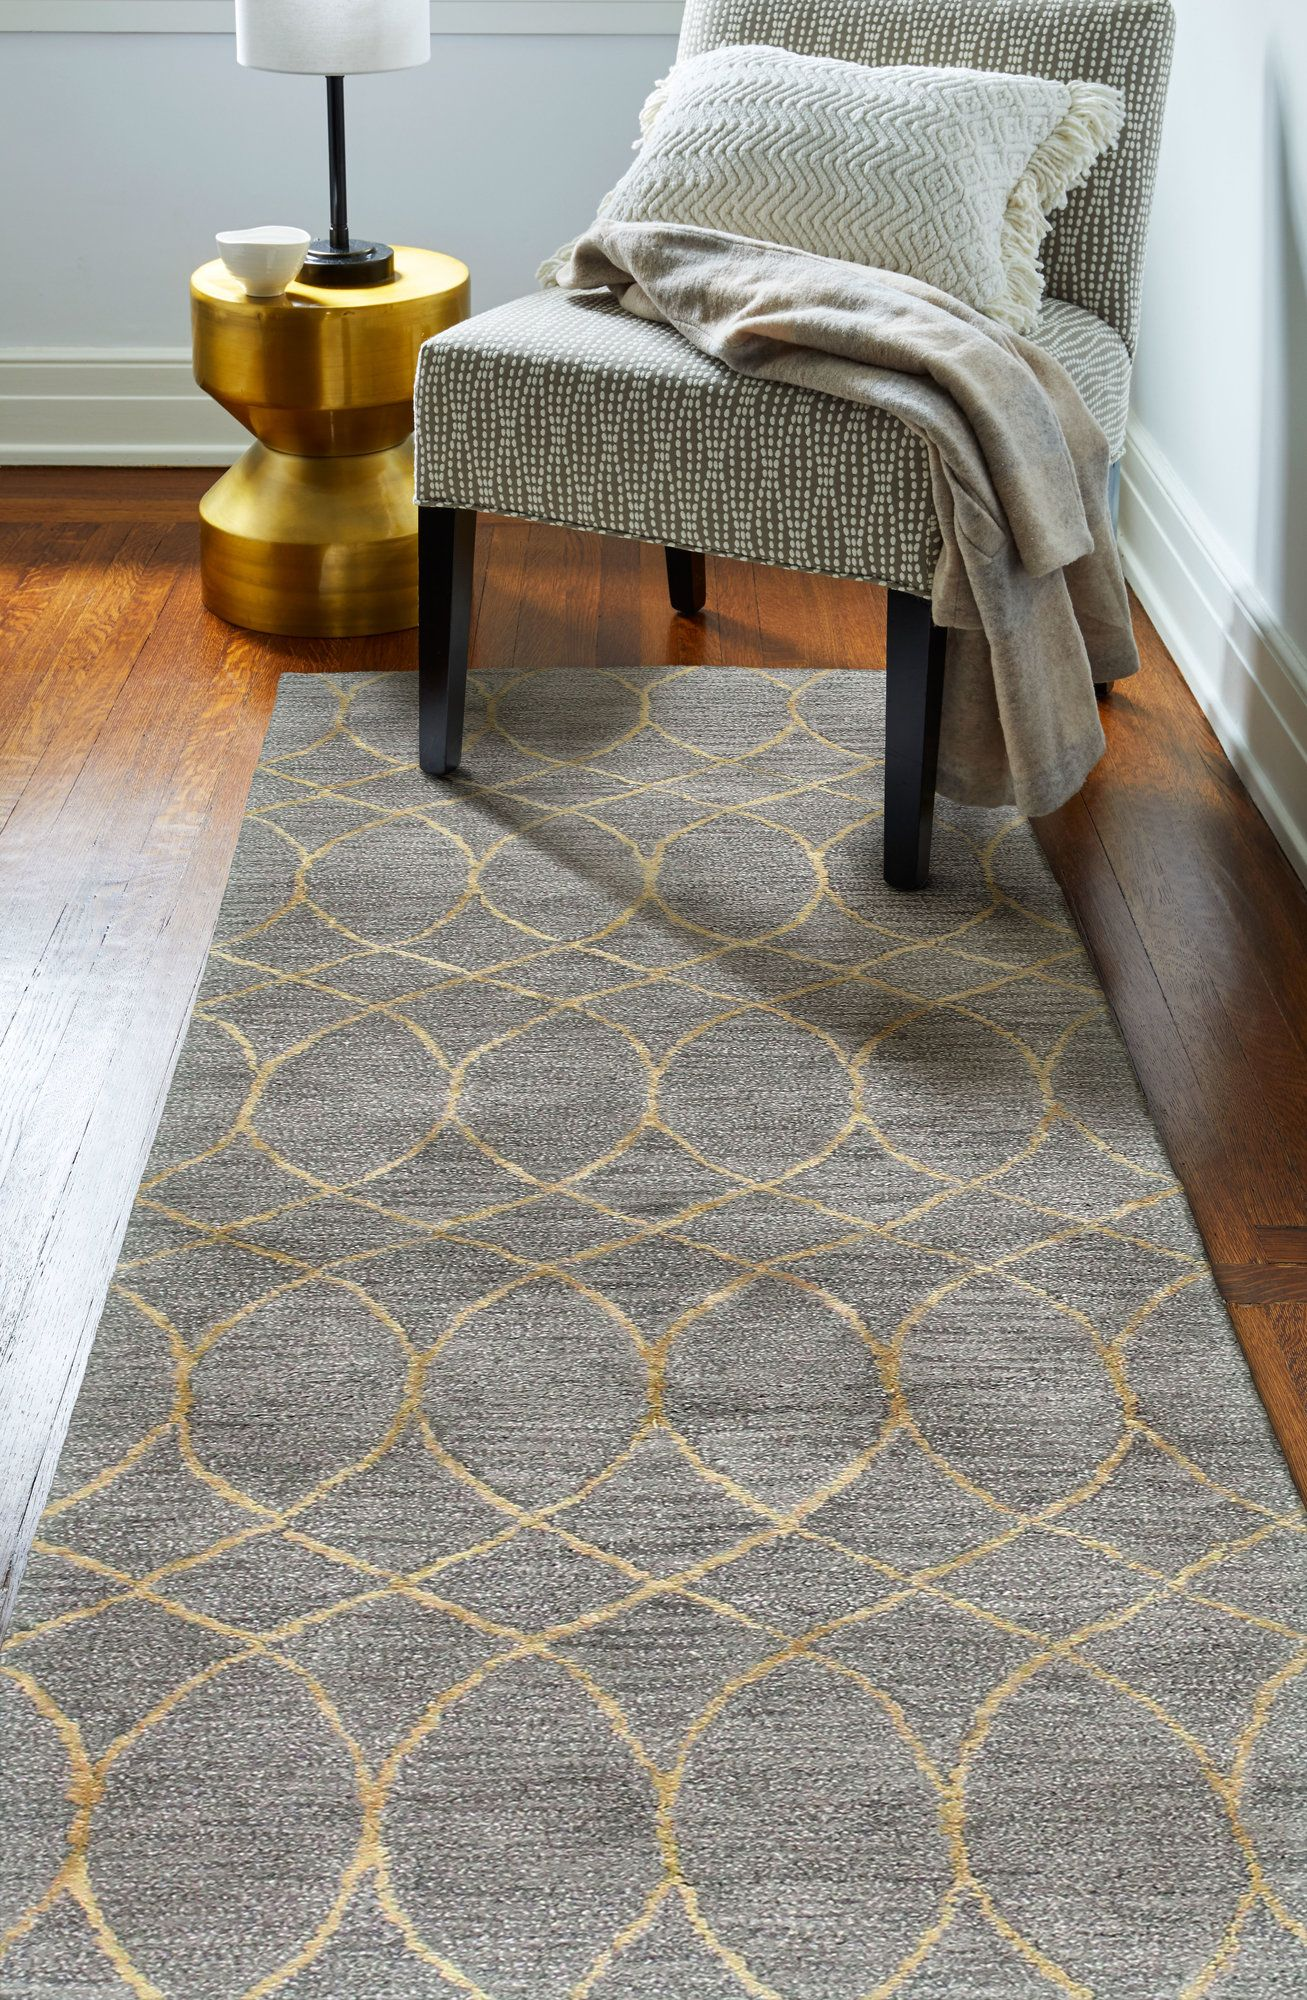 kerala hand tufted gray area rug products rugs area rugs round rh pinterest com